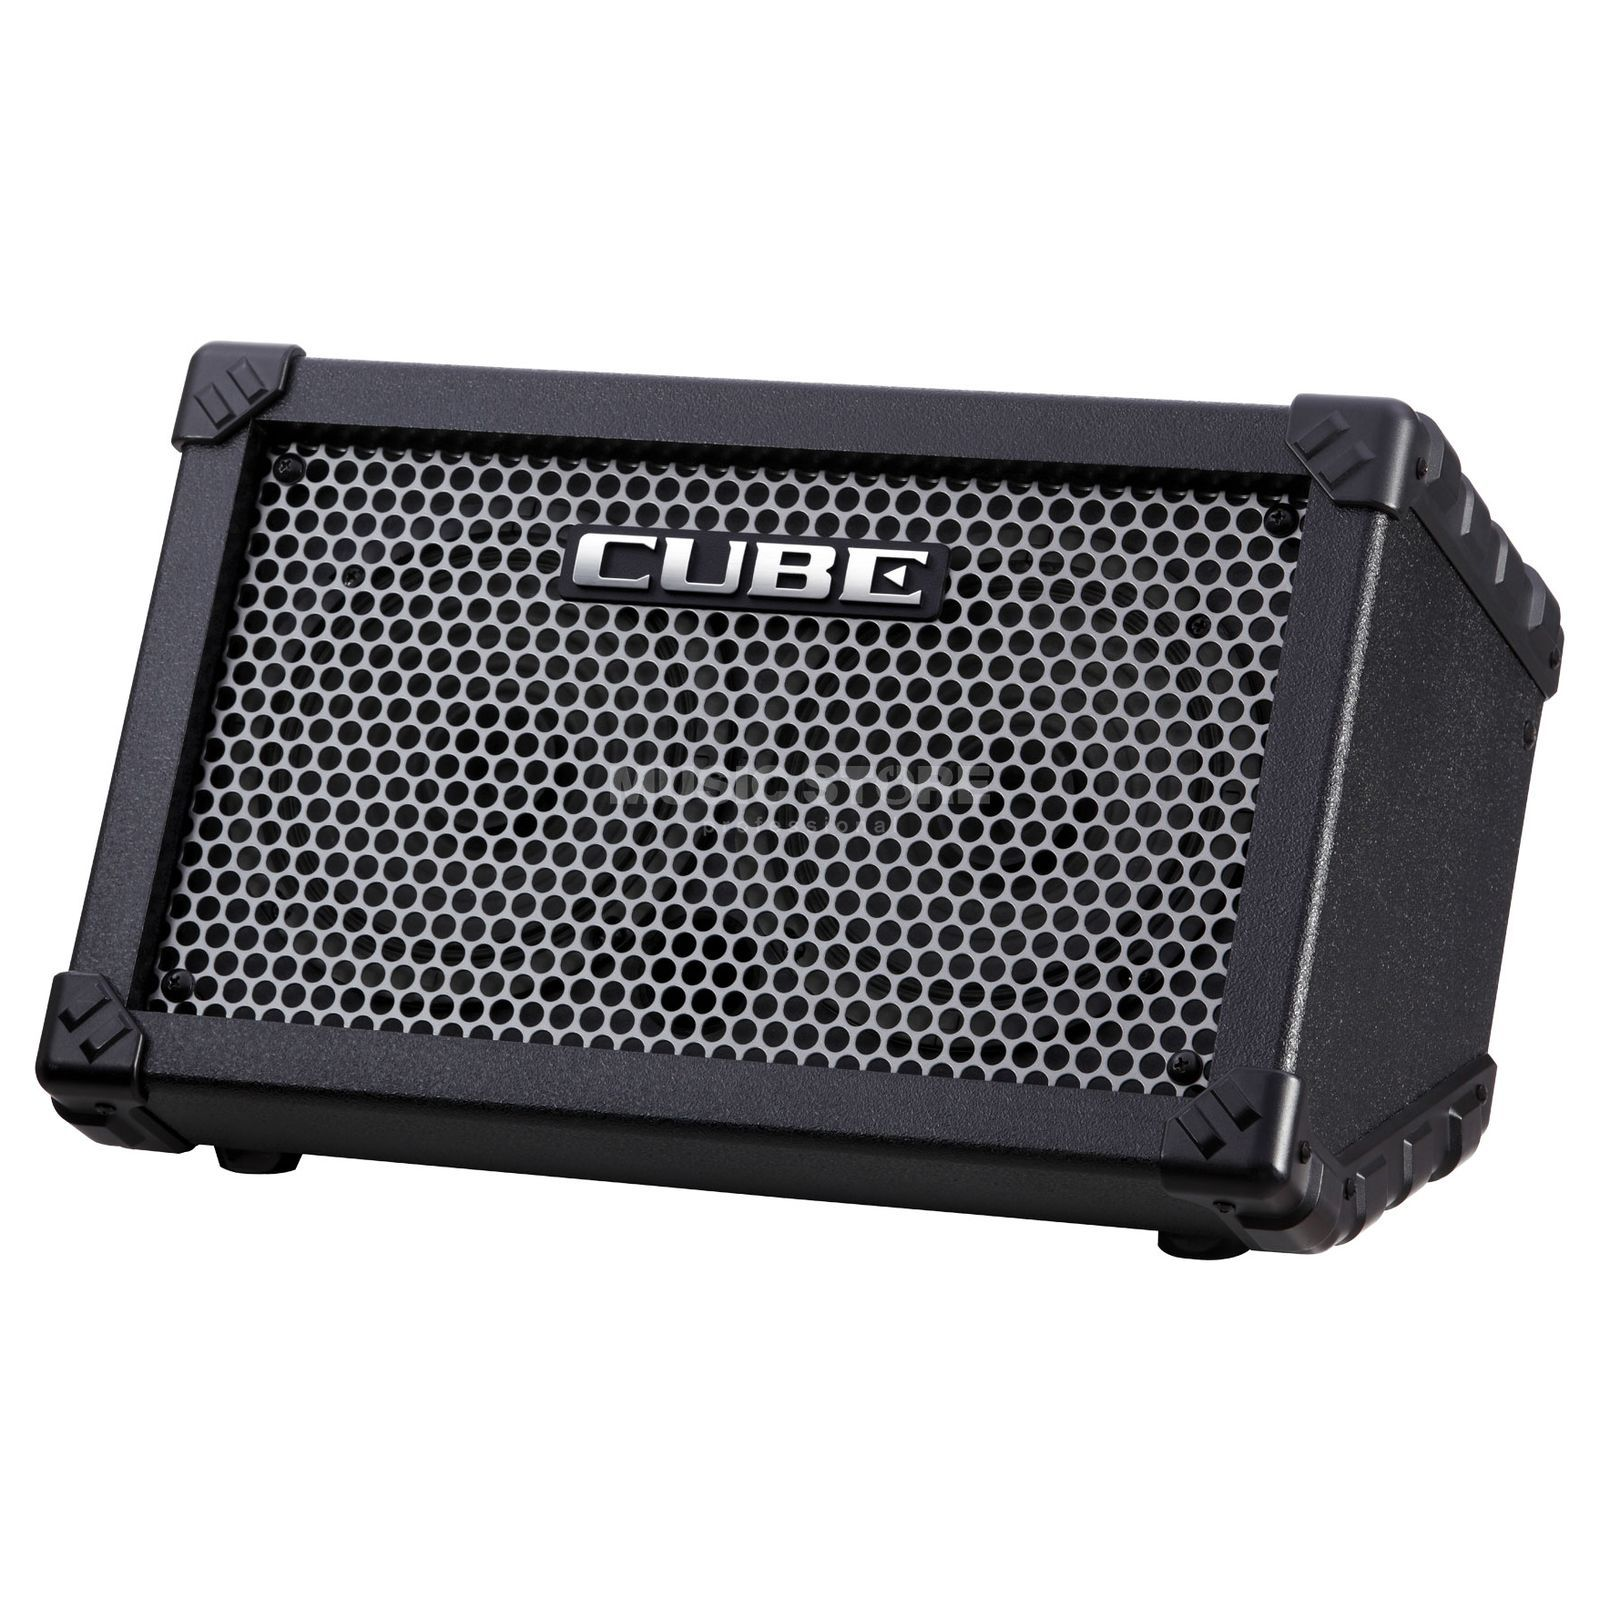 Roland Cube Street Battery Powered Bu sker's Amplifier, Black   Produktbillede